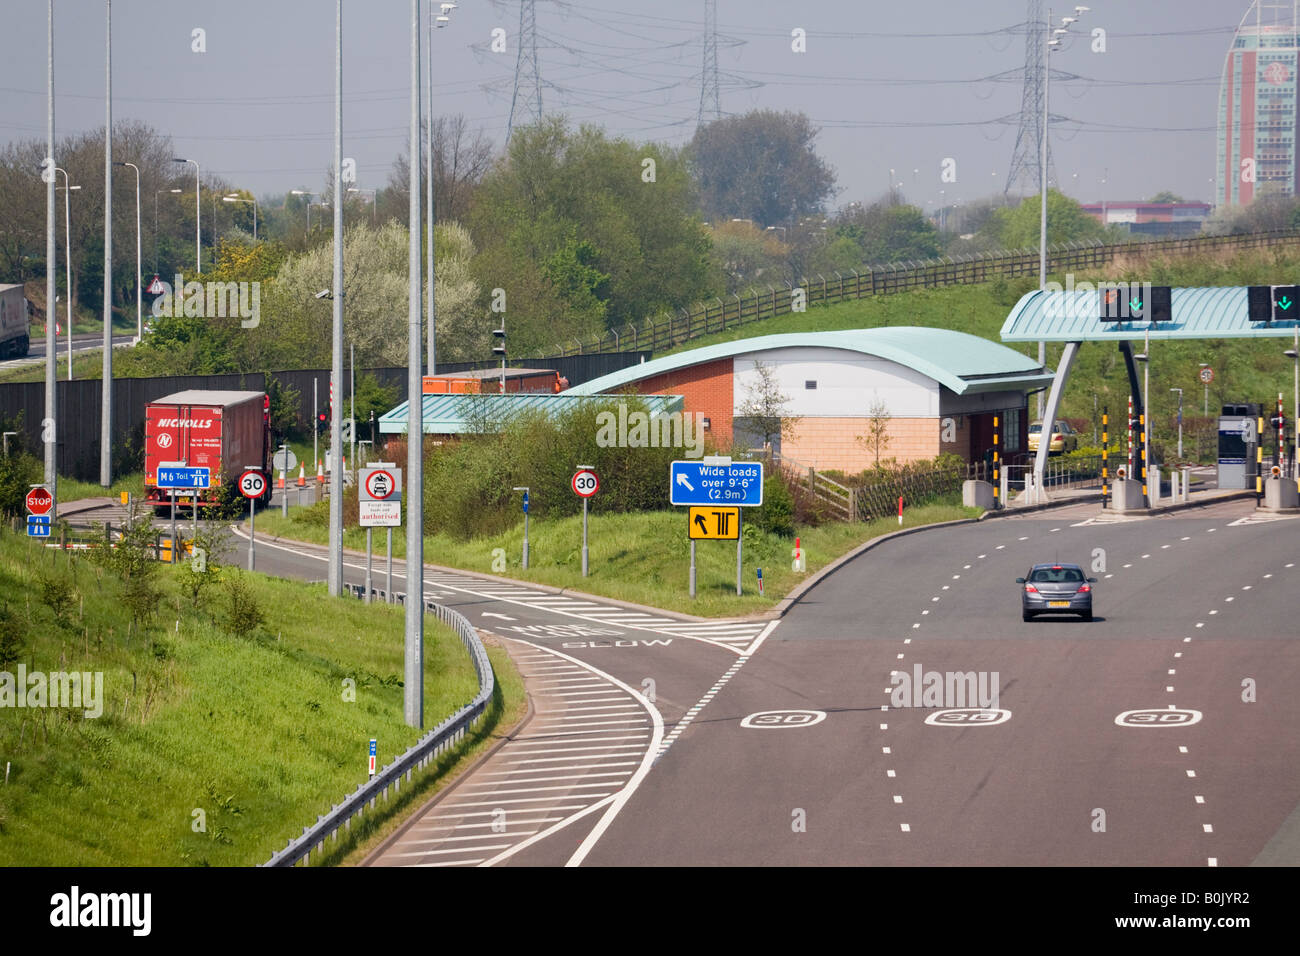 M6 TOLL MOTORWAY from above with vehicle approaching toll booths and lorry in wide load lane West Midlands England - Stock Image